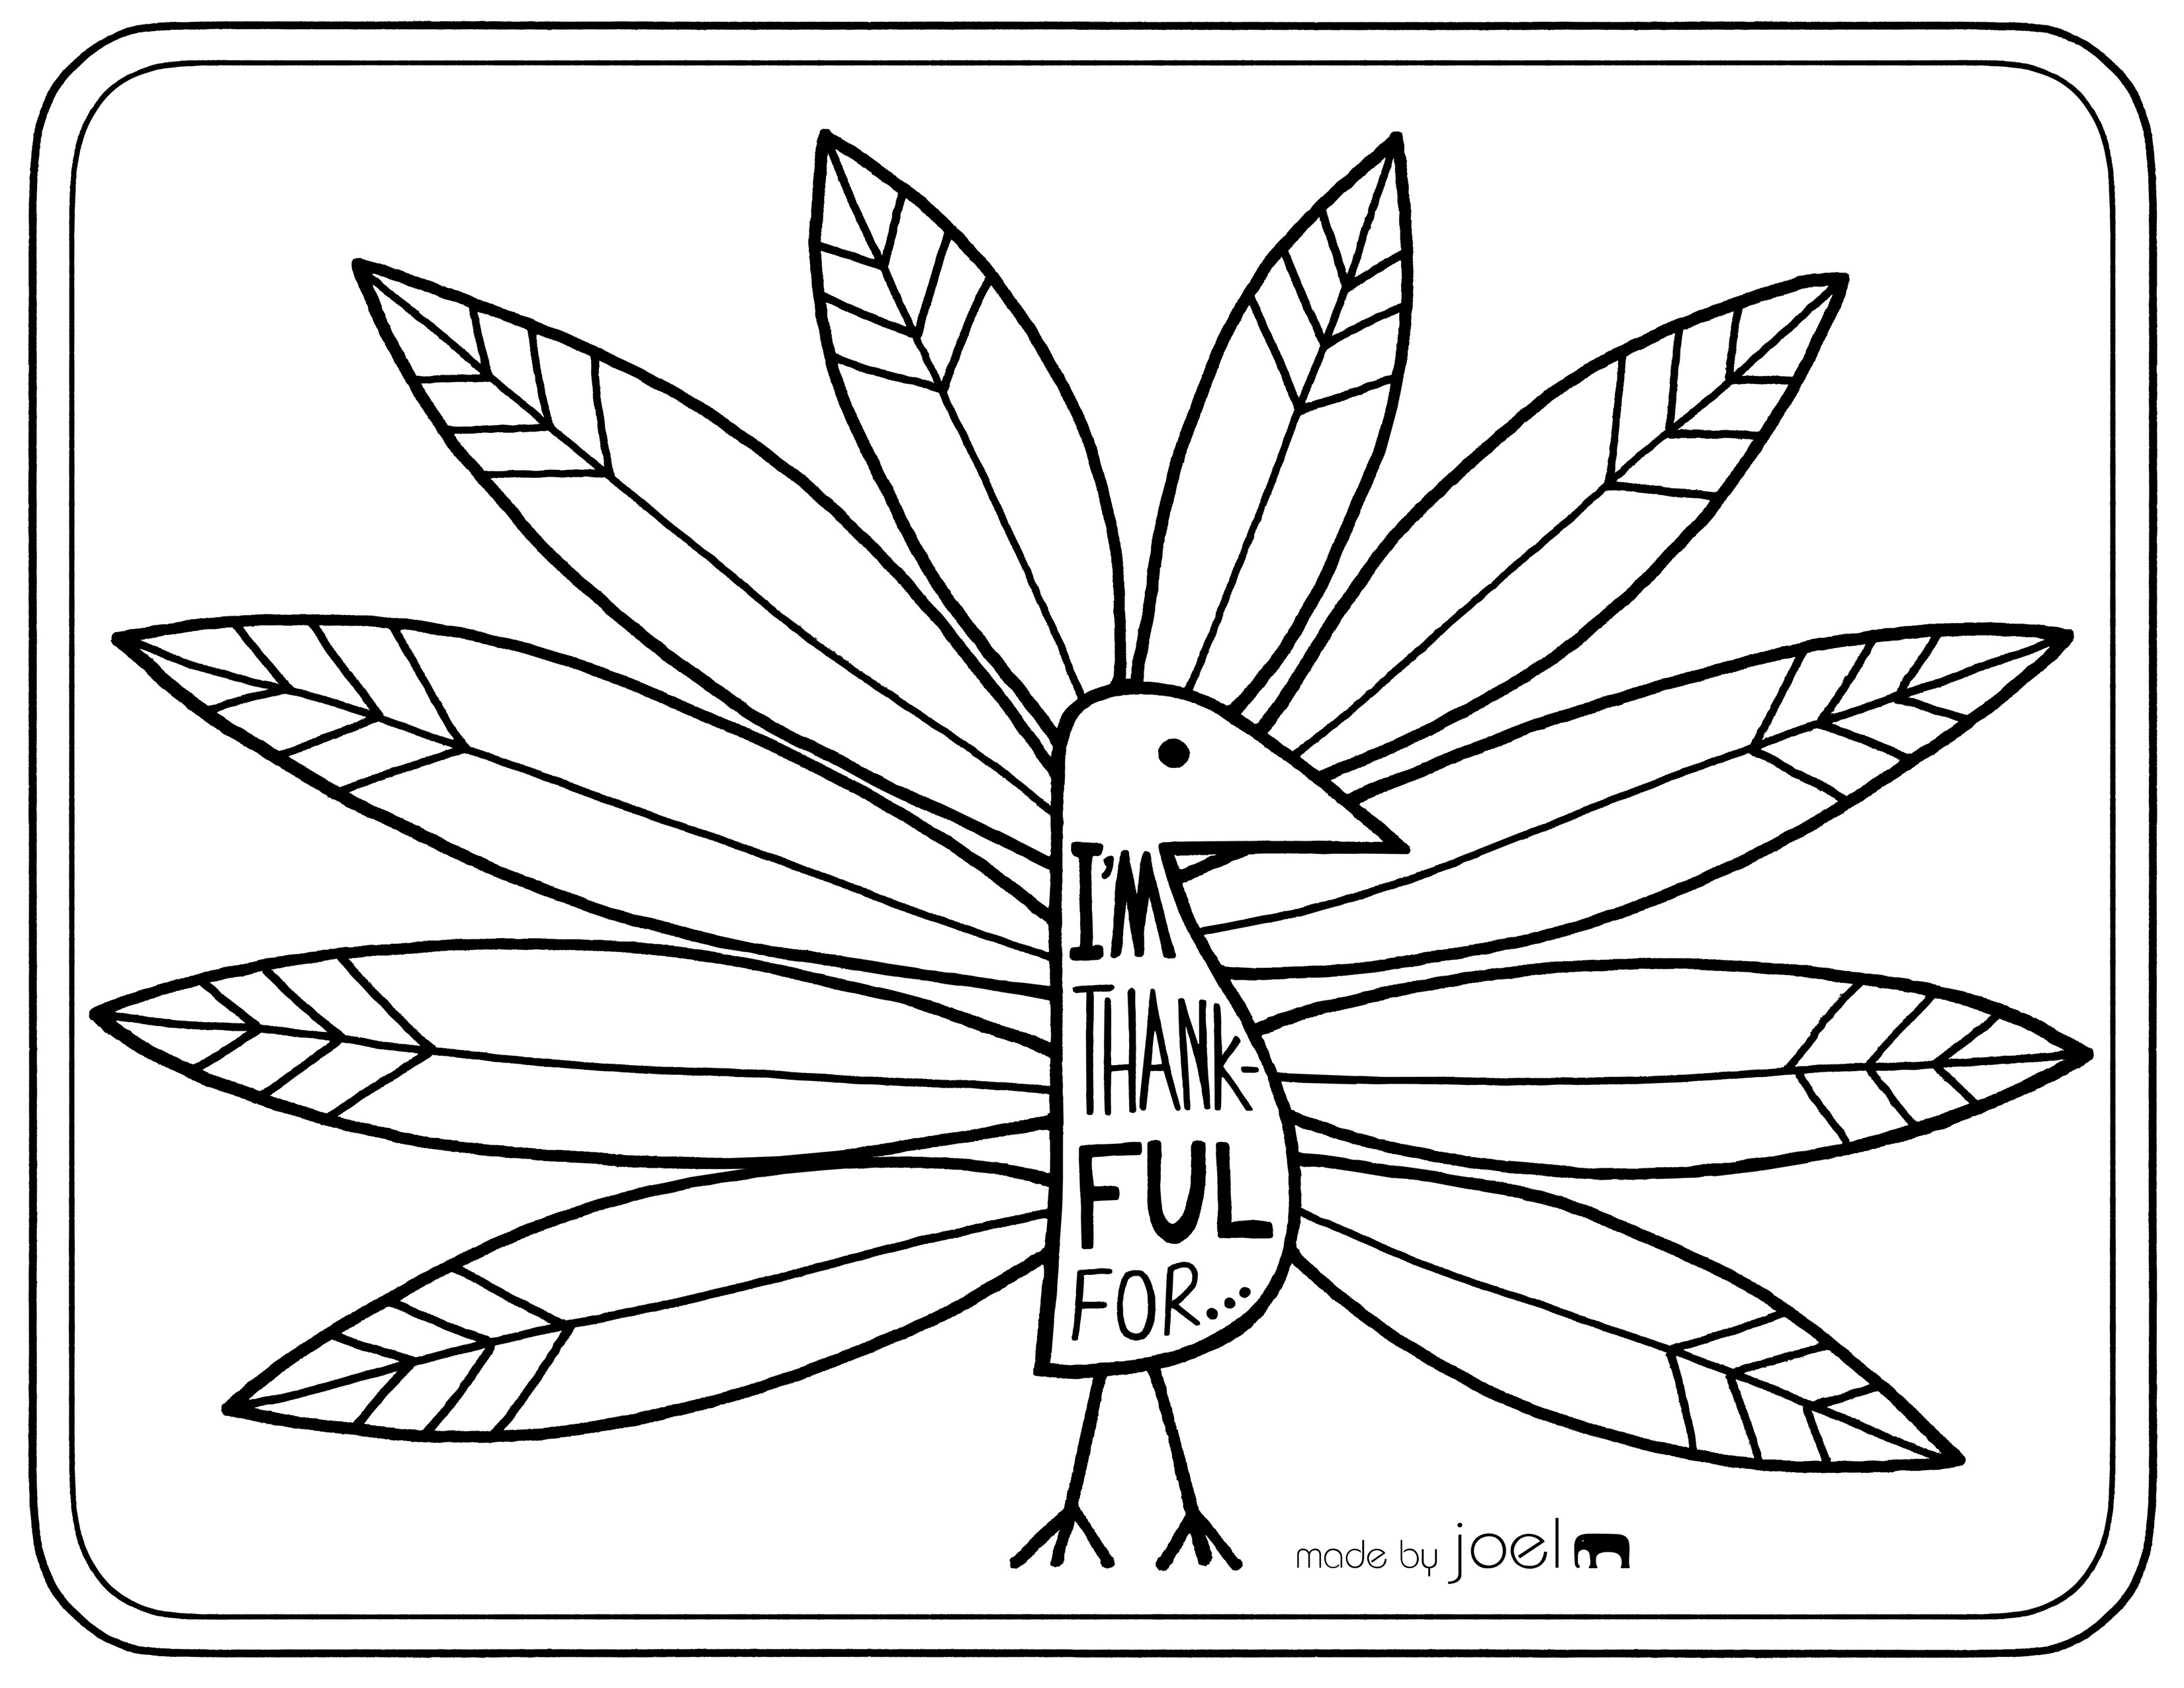 Placemat Coloring Page At Getdrawingscom Free For